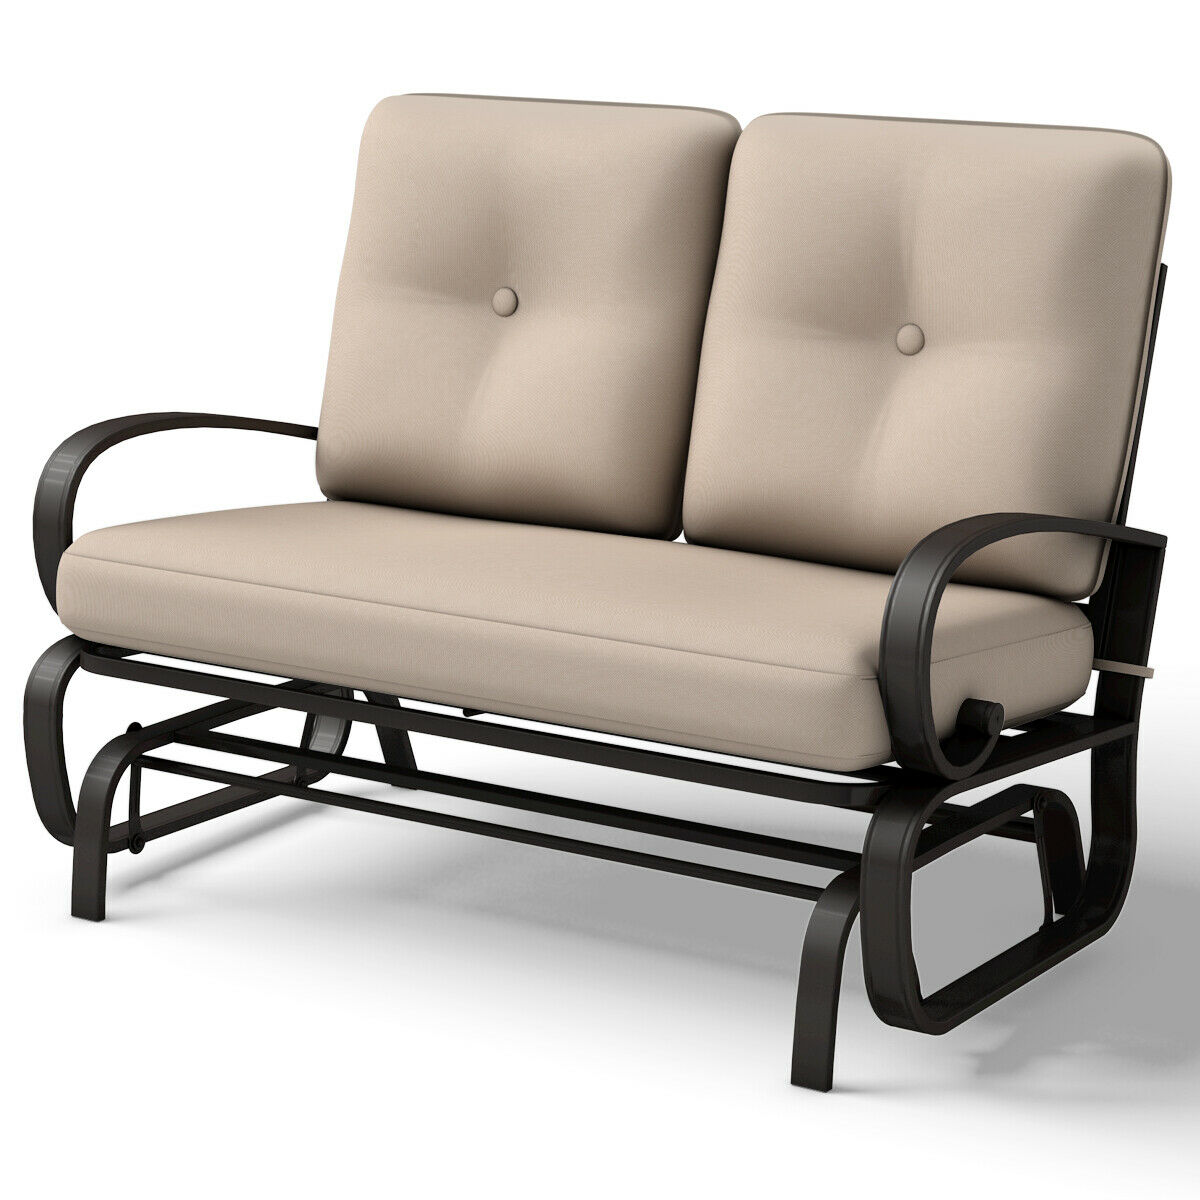 Costway Glider Outdoor Patio Rocking Bench Loveseat Cushioned Seat Steel Frame Furniture